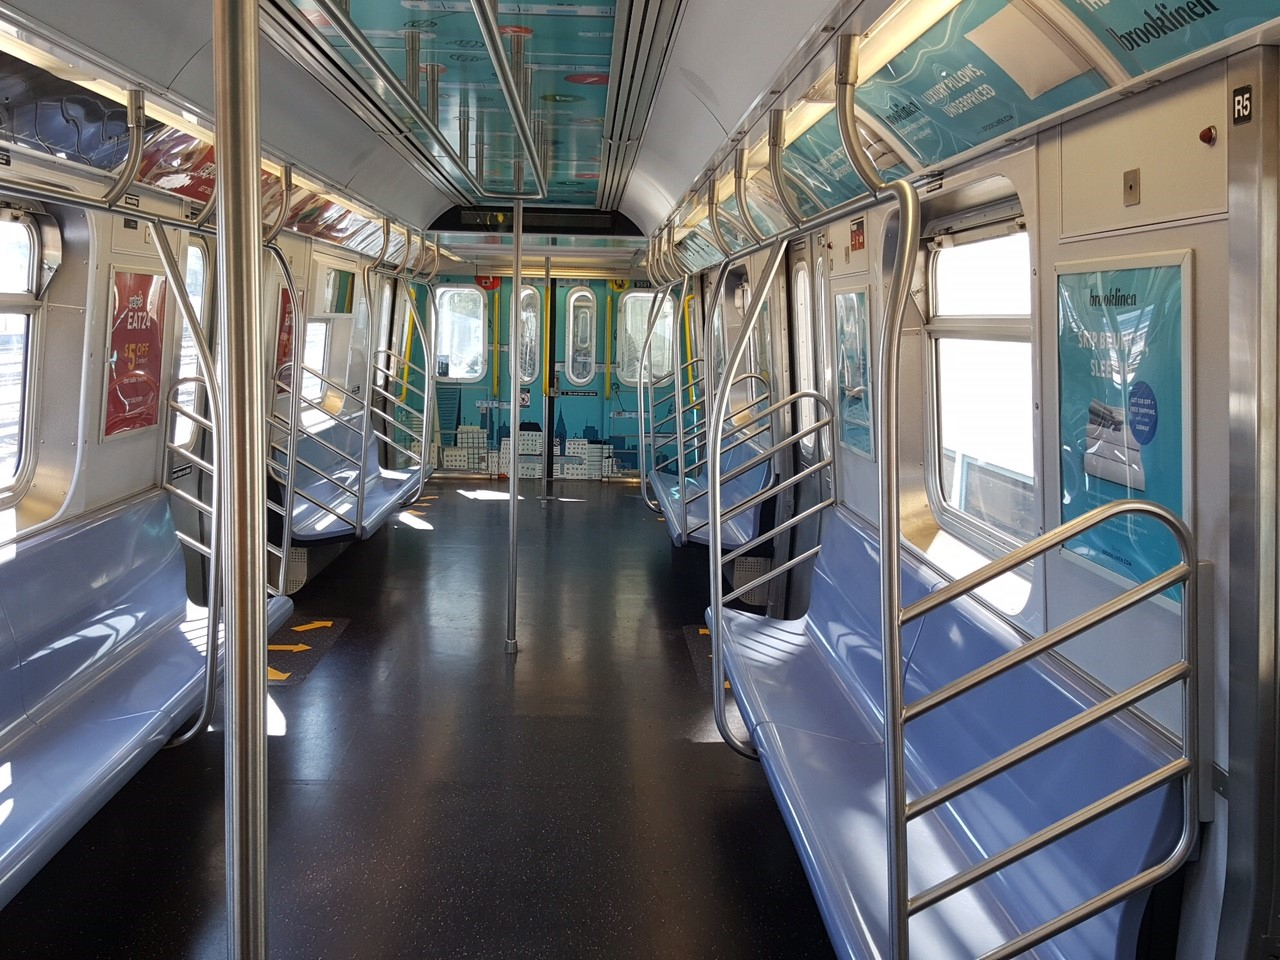 Photos Mta Makes More Room On Subway Cars By Removing